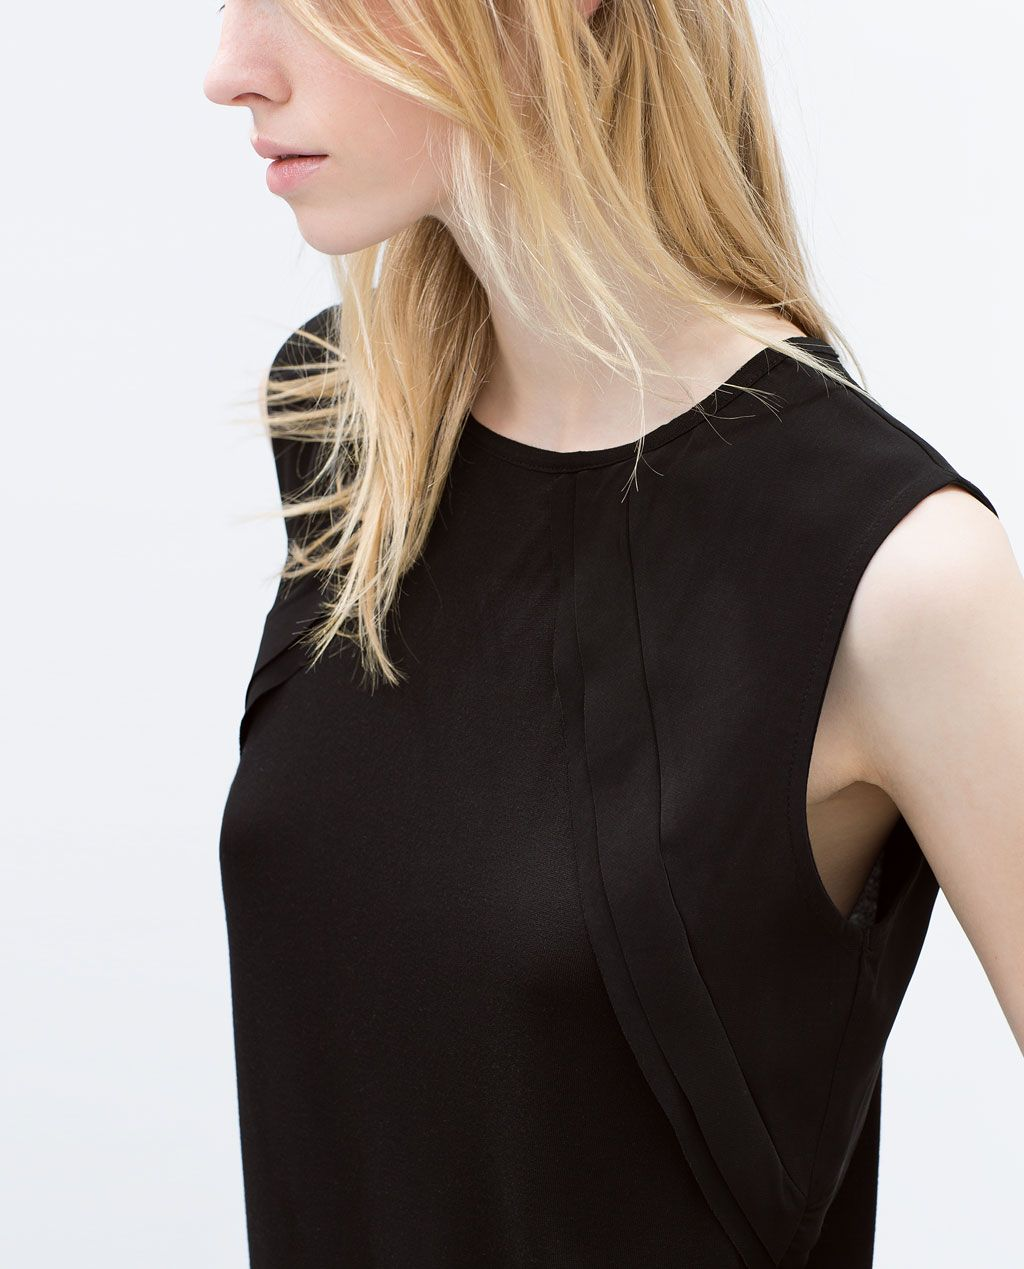 Zara black t shirt india - T Shirt With Frill On Sleeves View All T Shirts Woman Zara India